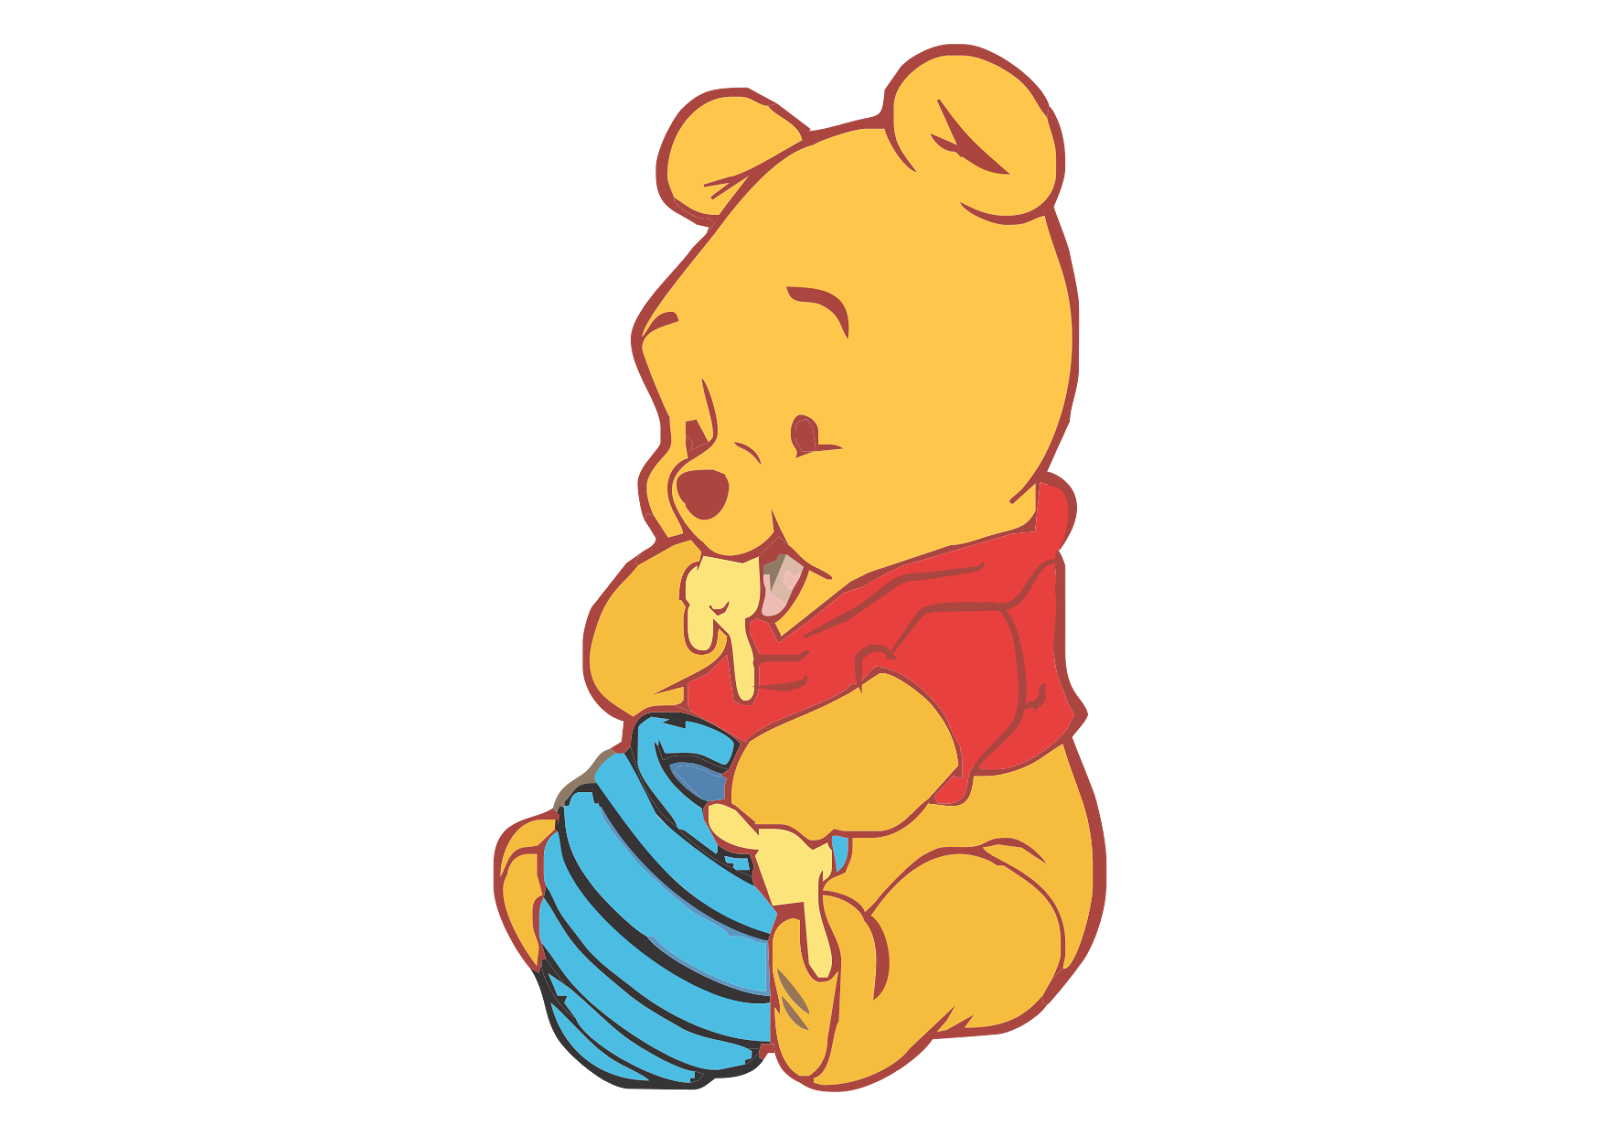 winnie the pooh baby png image purepng #17469